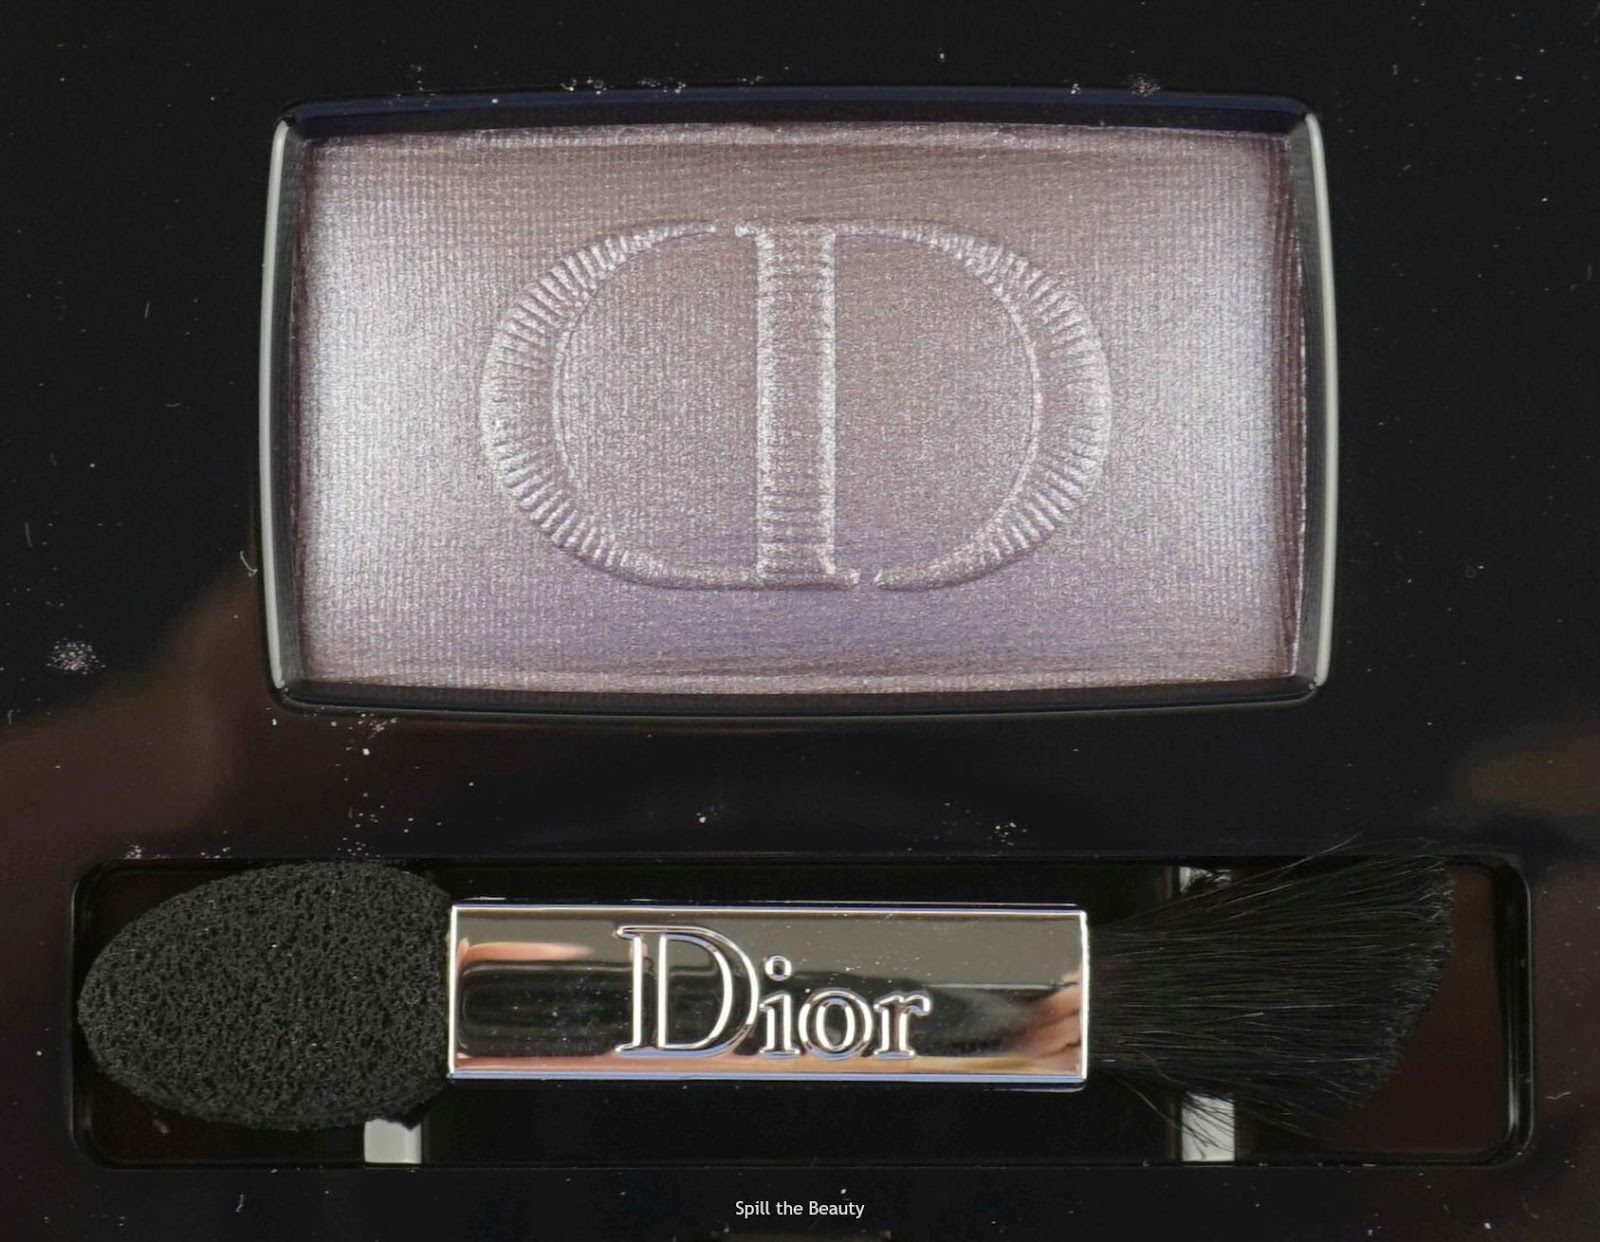 dior swatch review